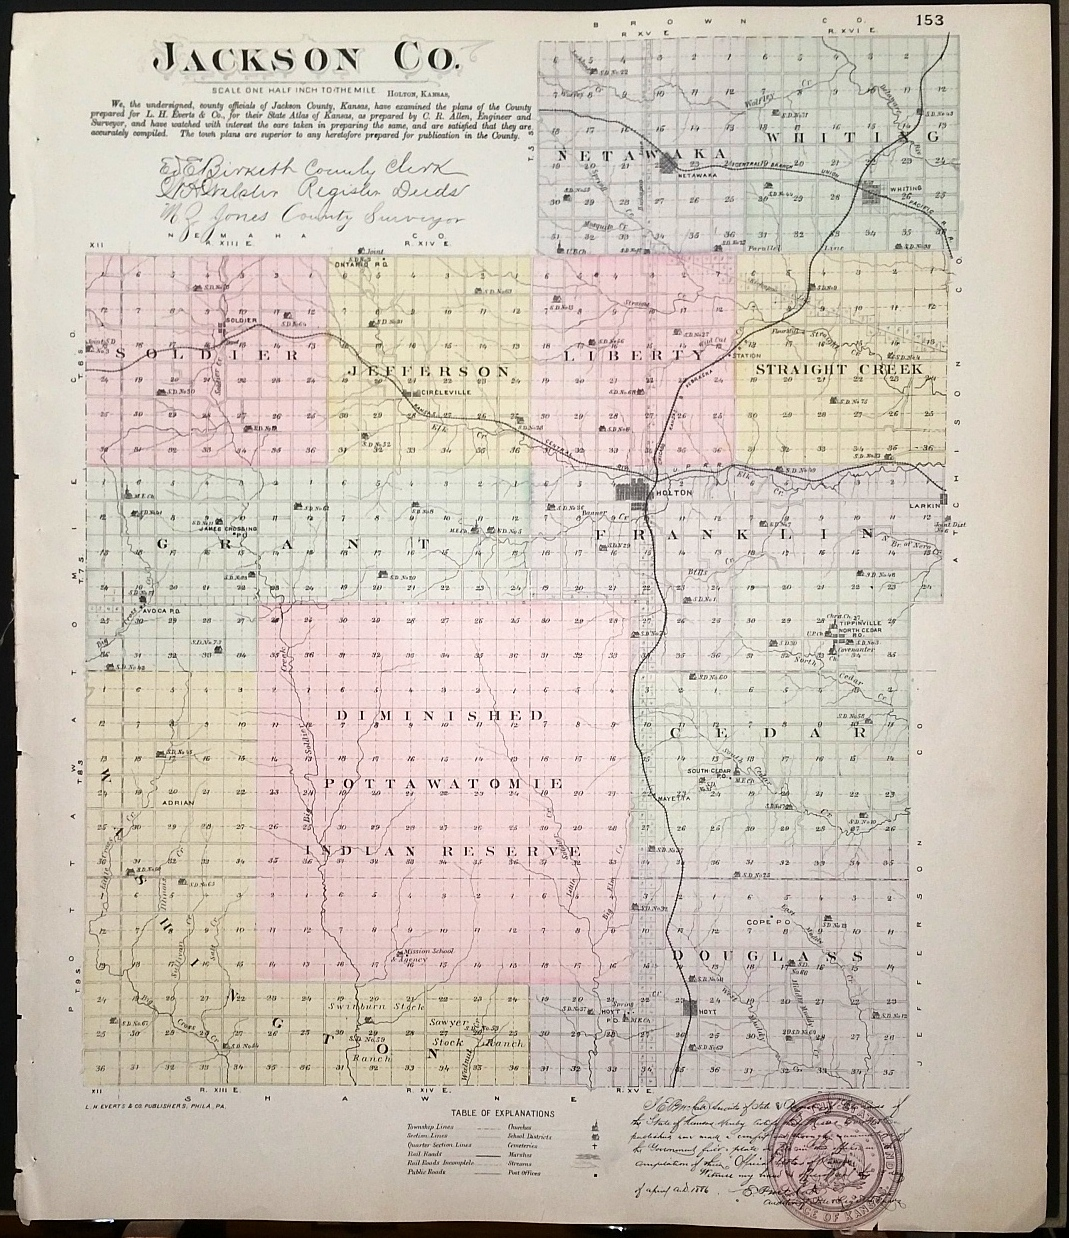 Jackson County Colorado Map.Map Jackson County Kansas Backed With Whiting Jackson Co